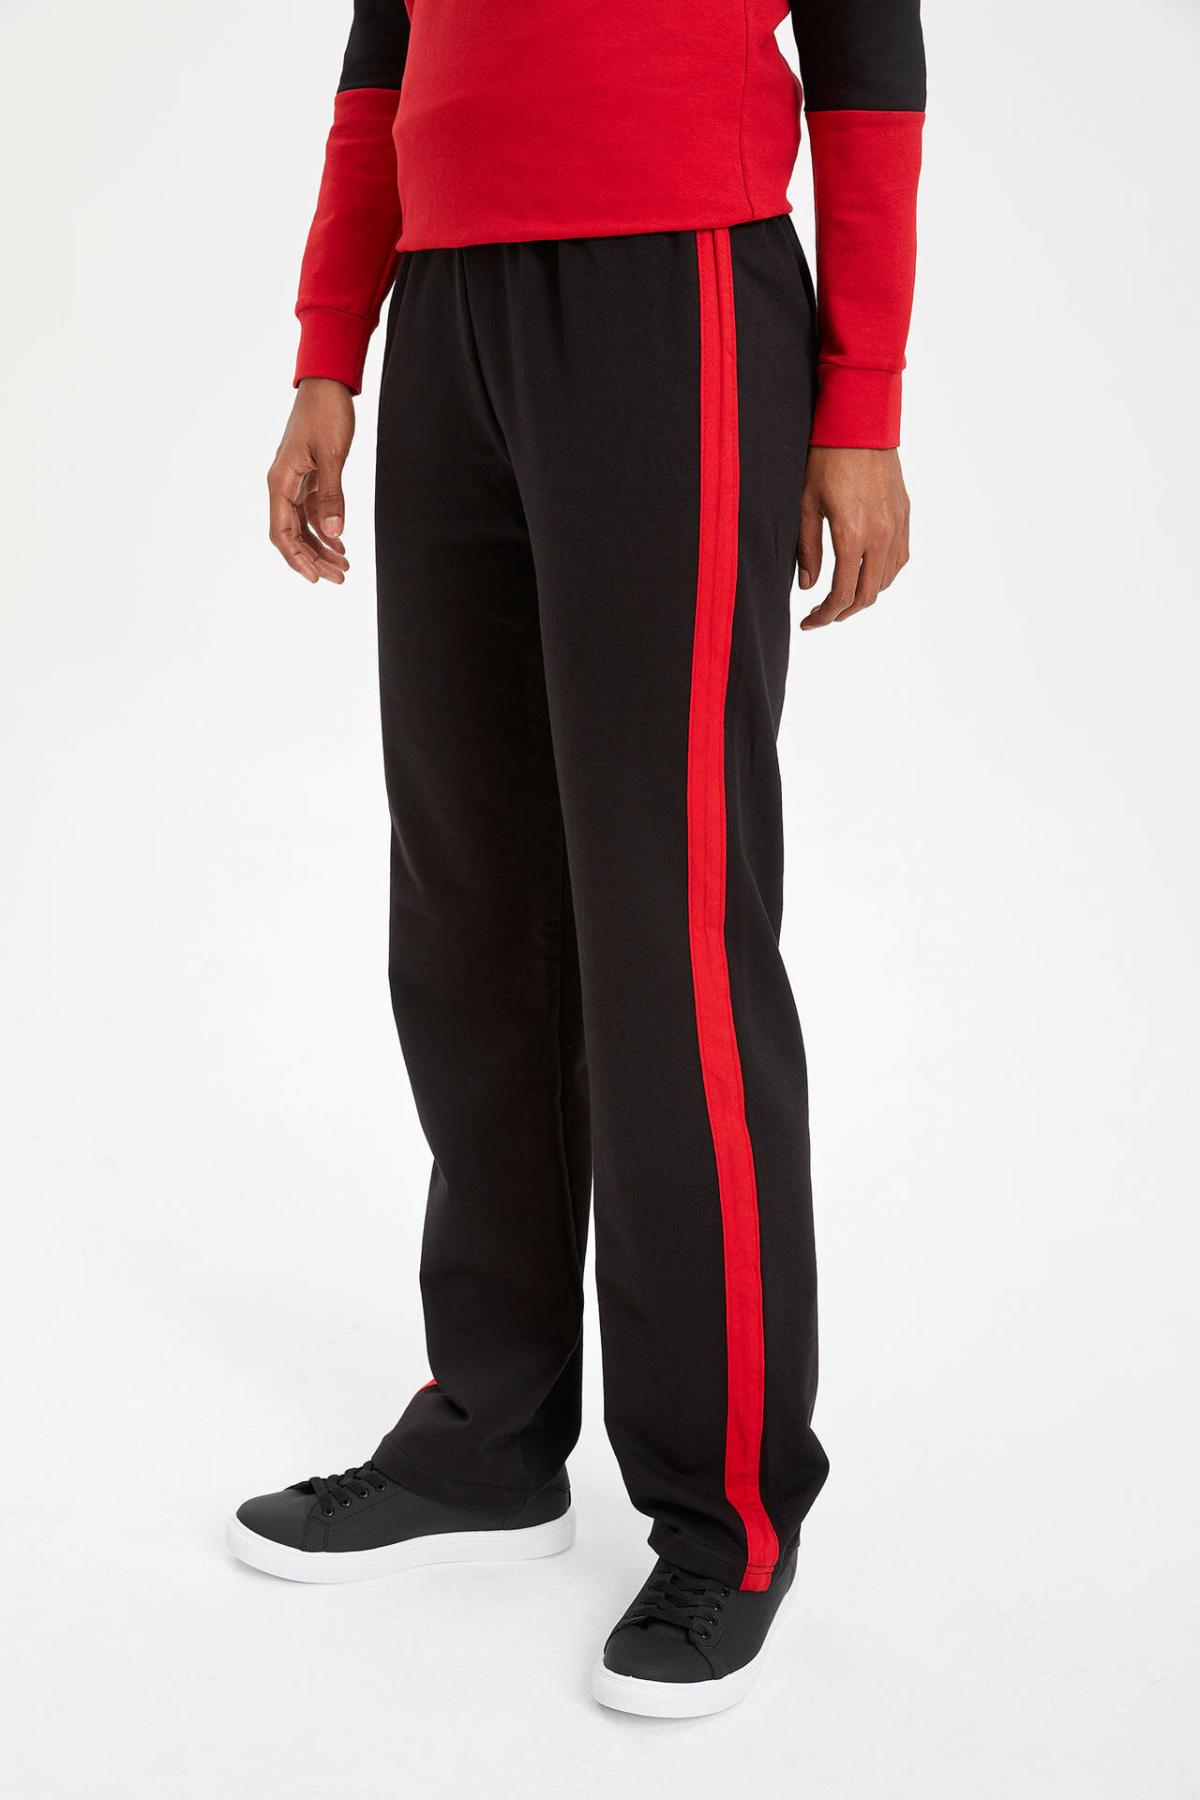 DeFacto Woman Knitted Trousers